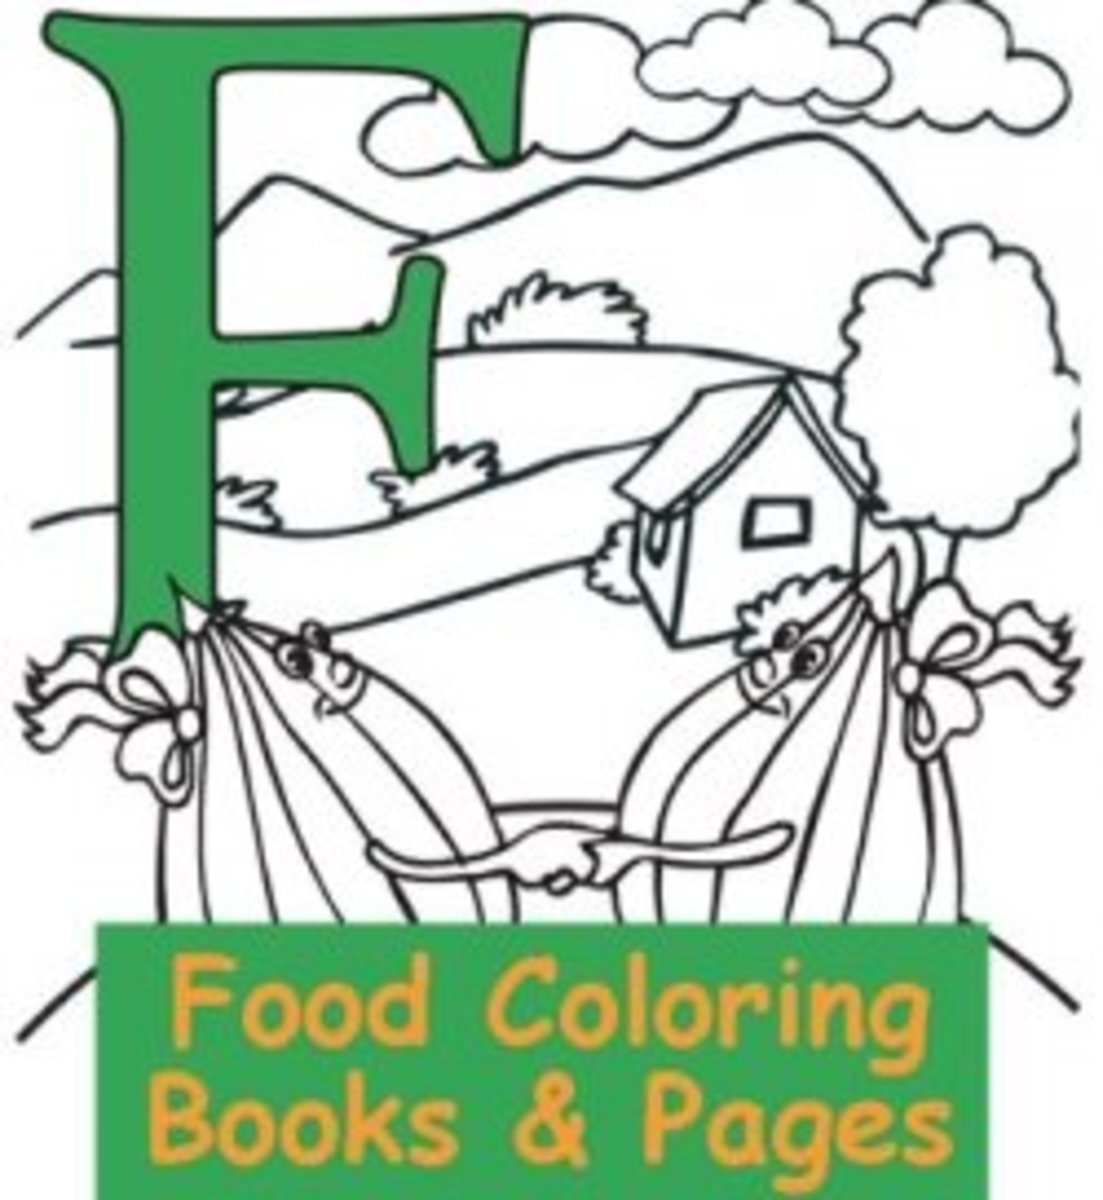 Favorite Foods Coloring Pages HubPages